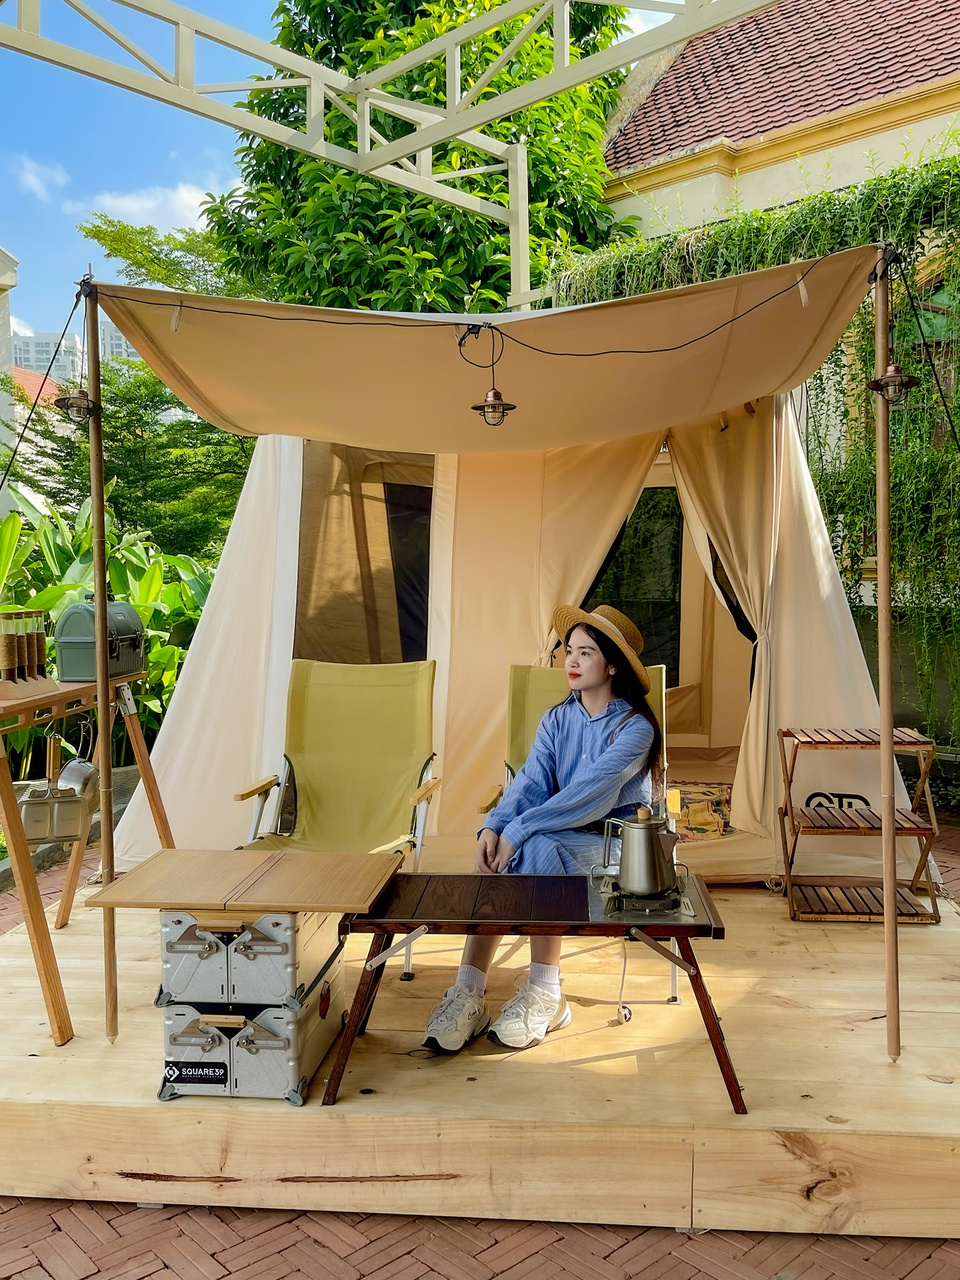 """Khuong Duy, the founder of Square 39, shared with Zing: """"The café follows the high-camping model. It has tents, beds, air conditioners, bathrooms, electric water heaters, tables and desks, and even kitchens"""". This architecture has been famous in many countries in Asia such as Japan, Korea and Thailand.  Photo: Anh Nguyet"""